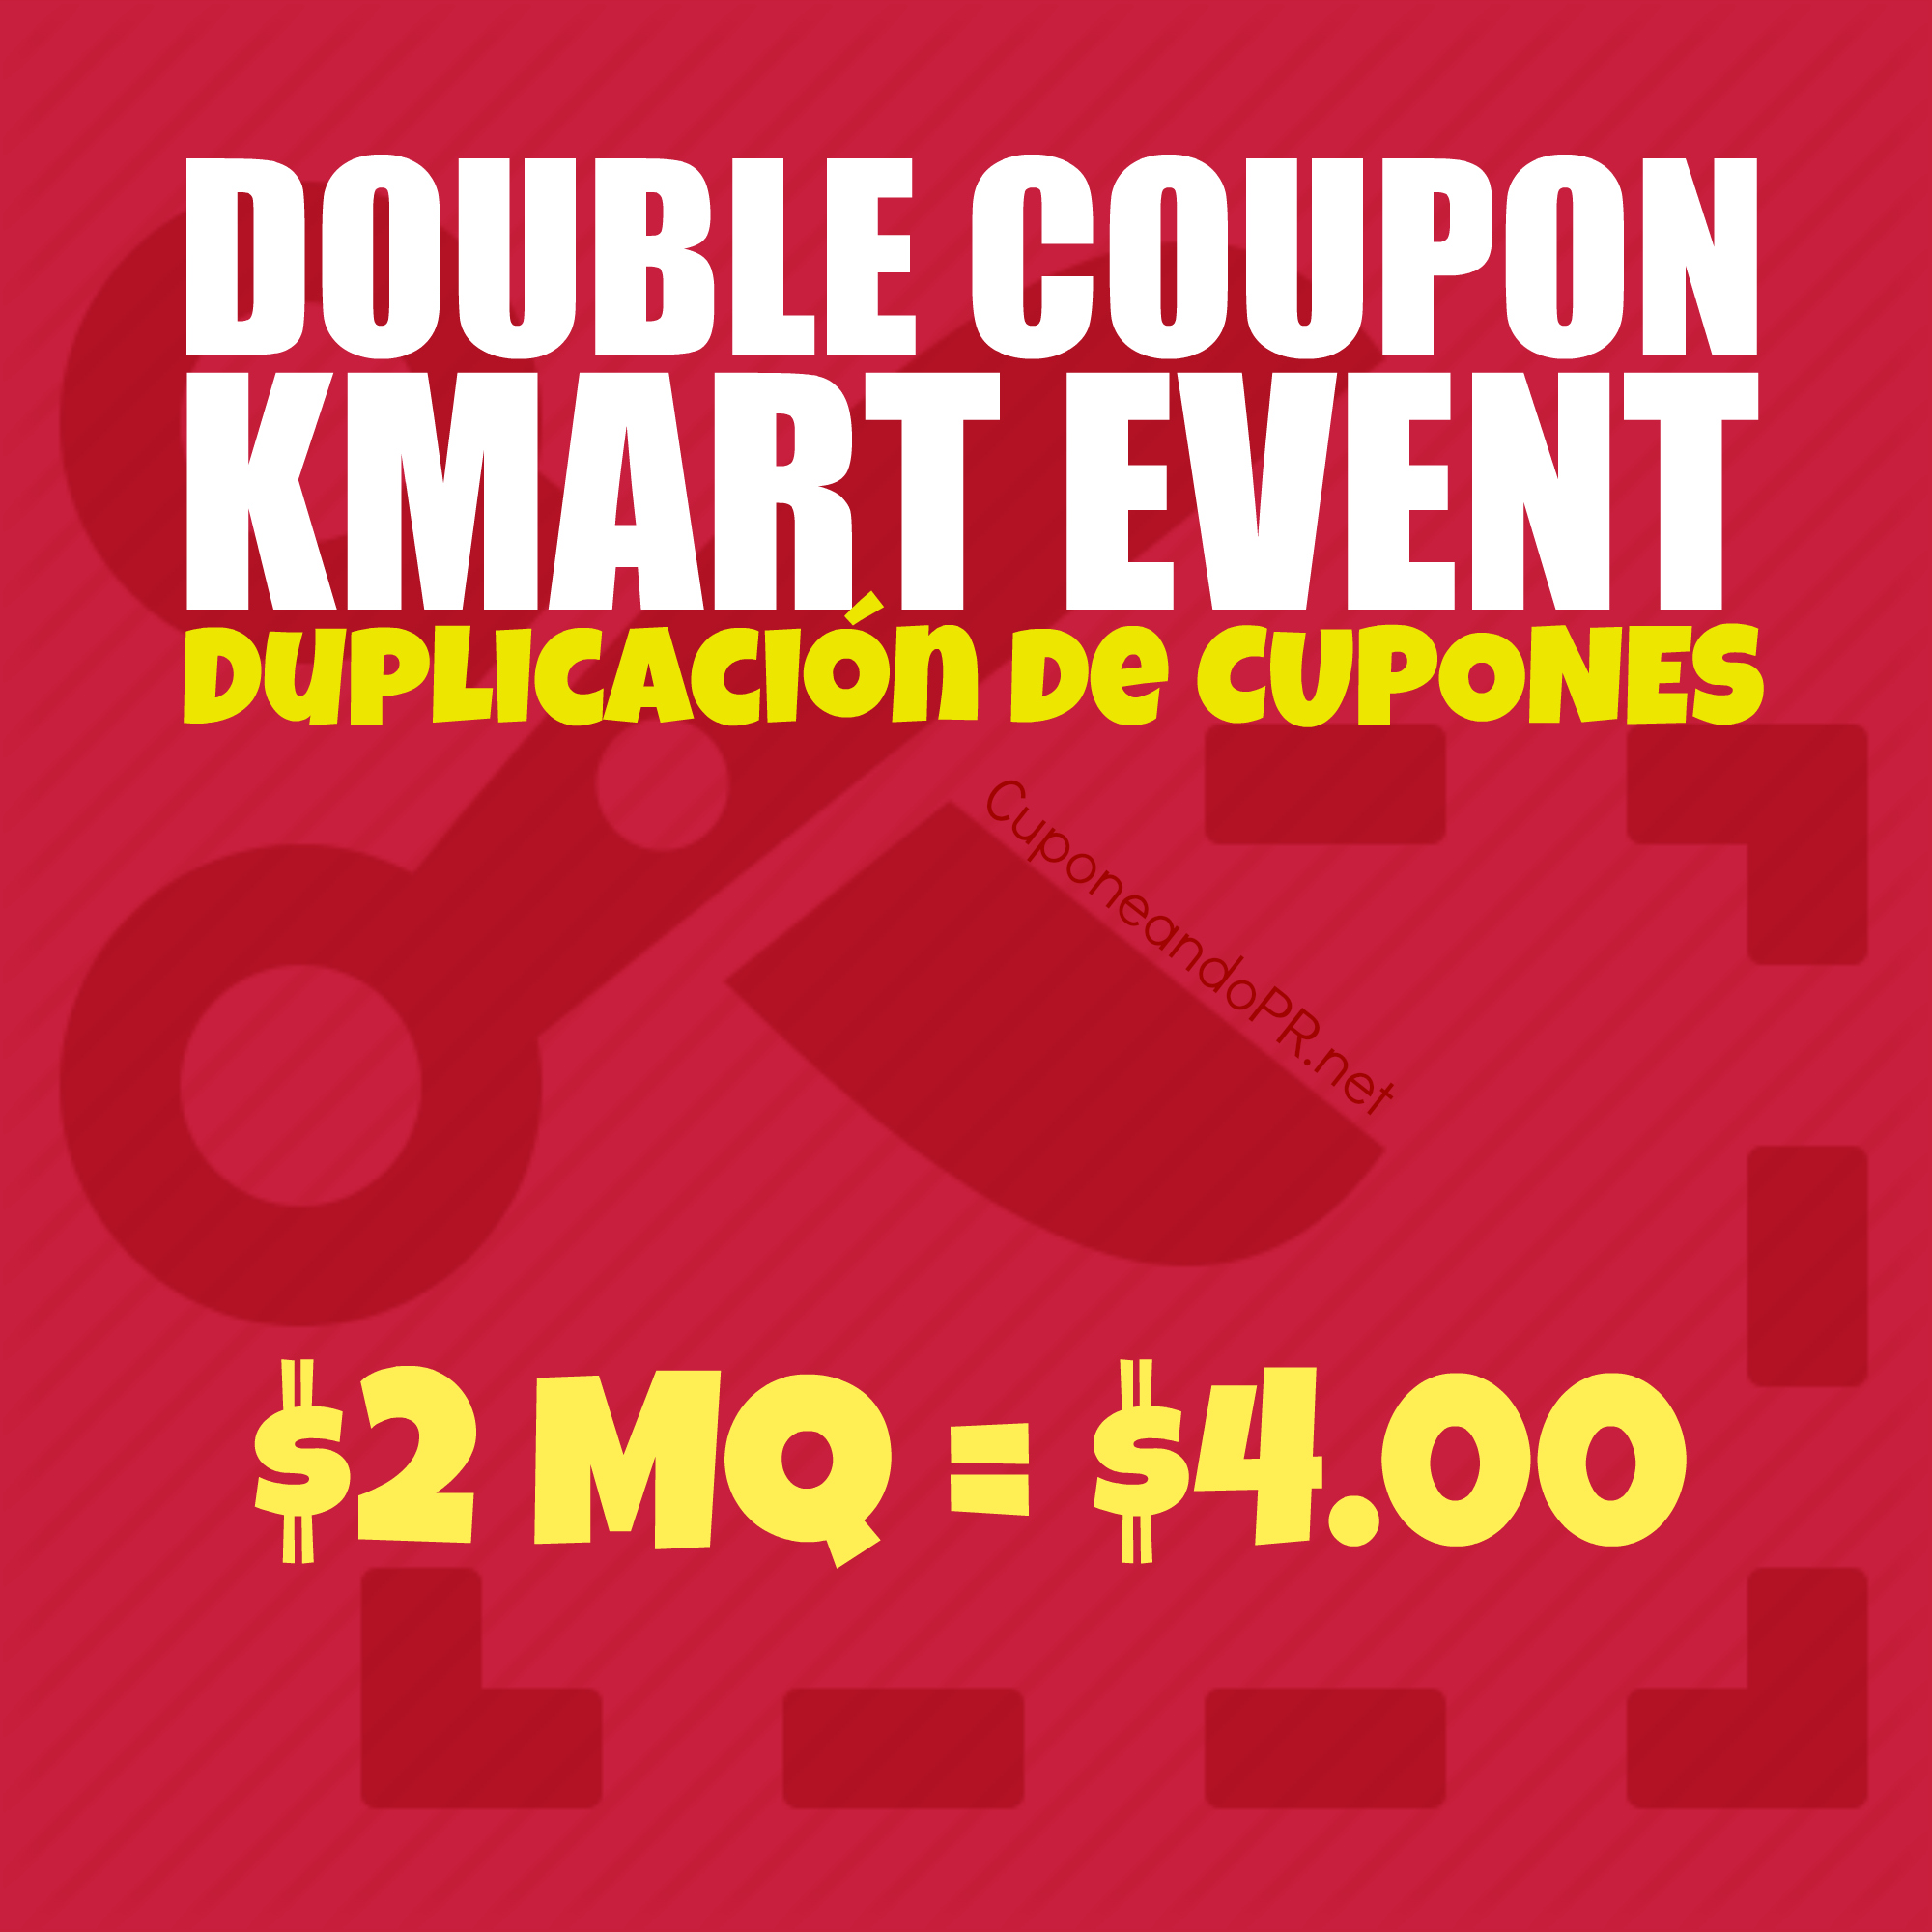 Kmart Coupons Kmart Double Coupon Policy 2018 Galeton Gloves Coupon Code